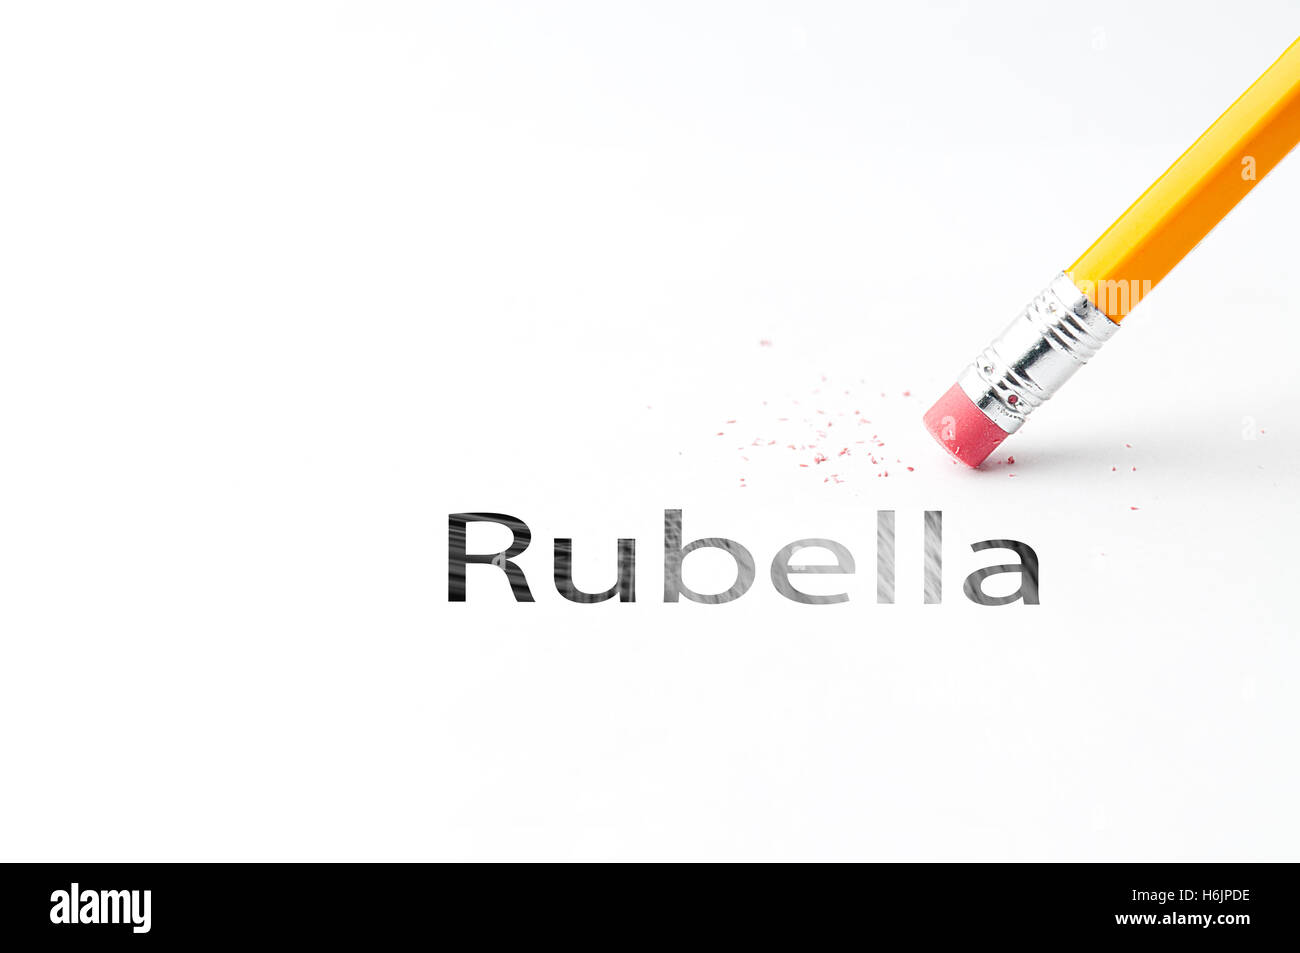 Pencil with eraser - Stock Image